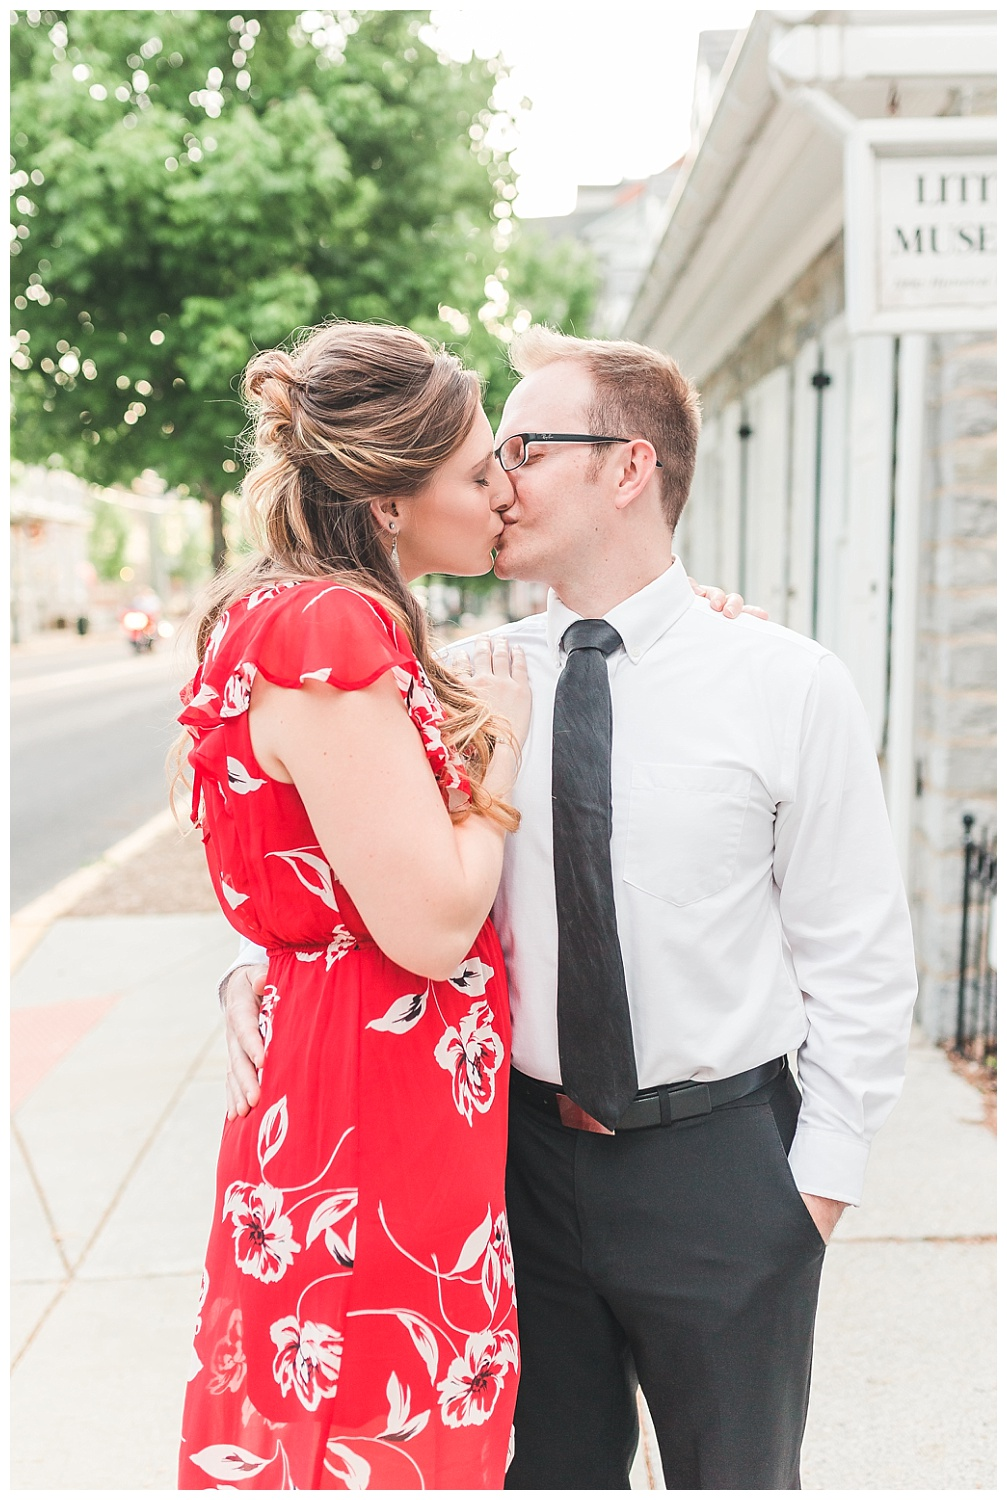 Downtown Lititz PA, spring anniversary session